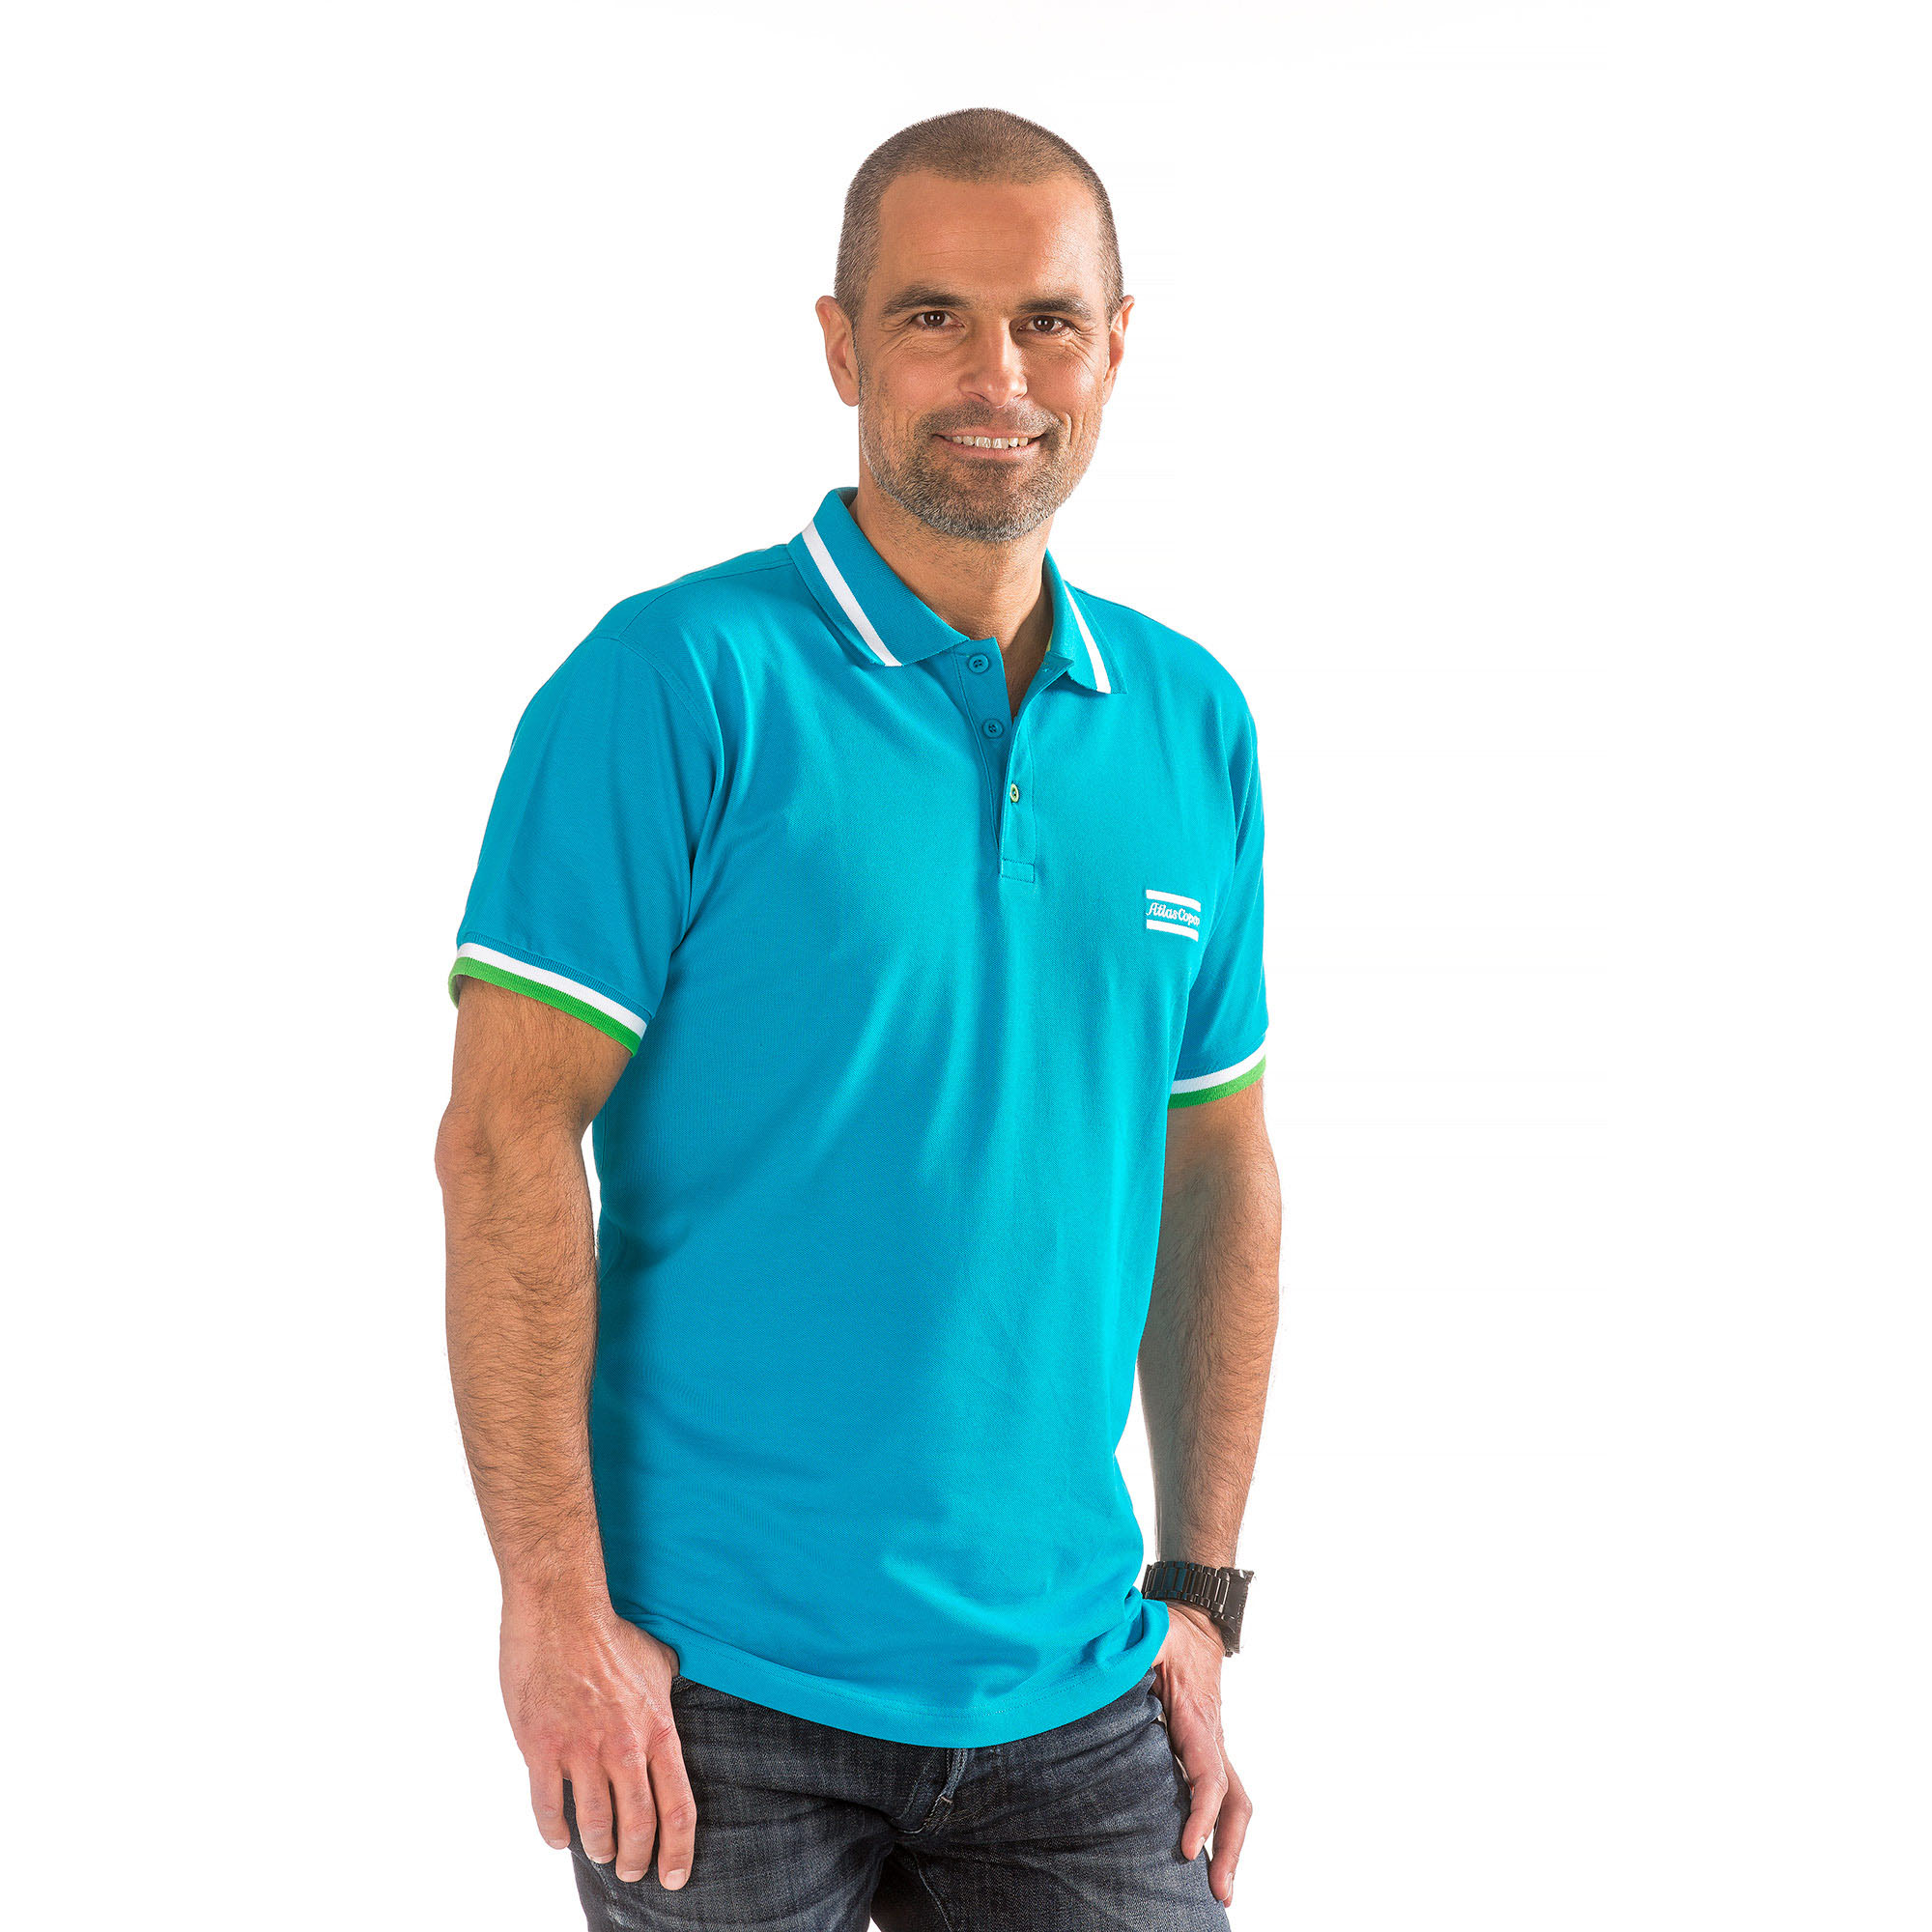 For this polo shirt we use a new quality fabric, a mix of organic cotton and Spandex. The Spandex adds comfort and flexibility. The fabric is finely stitched and has nice green contrasting to offset the blue background. This garment is GOTS certified – the world's leading processing standard for textiles made from organic fibres. GOTS covers ecological and social criteria and every part of the textile supply chain is independently certified.